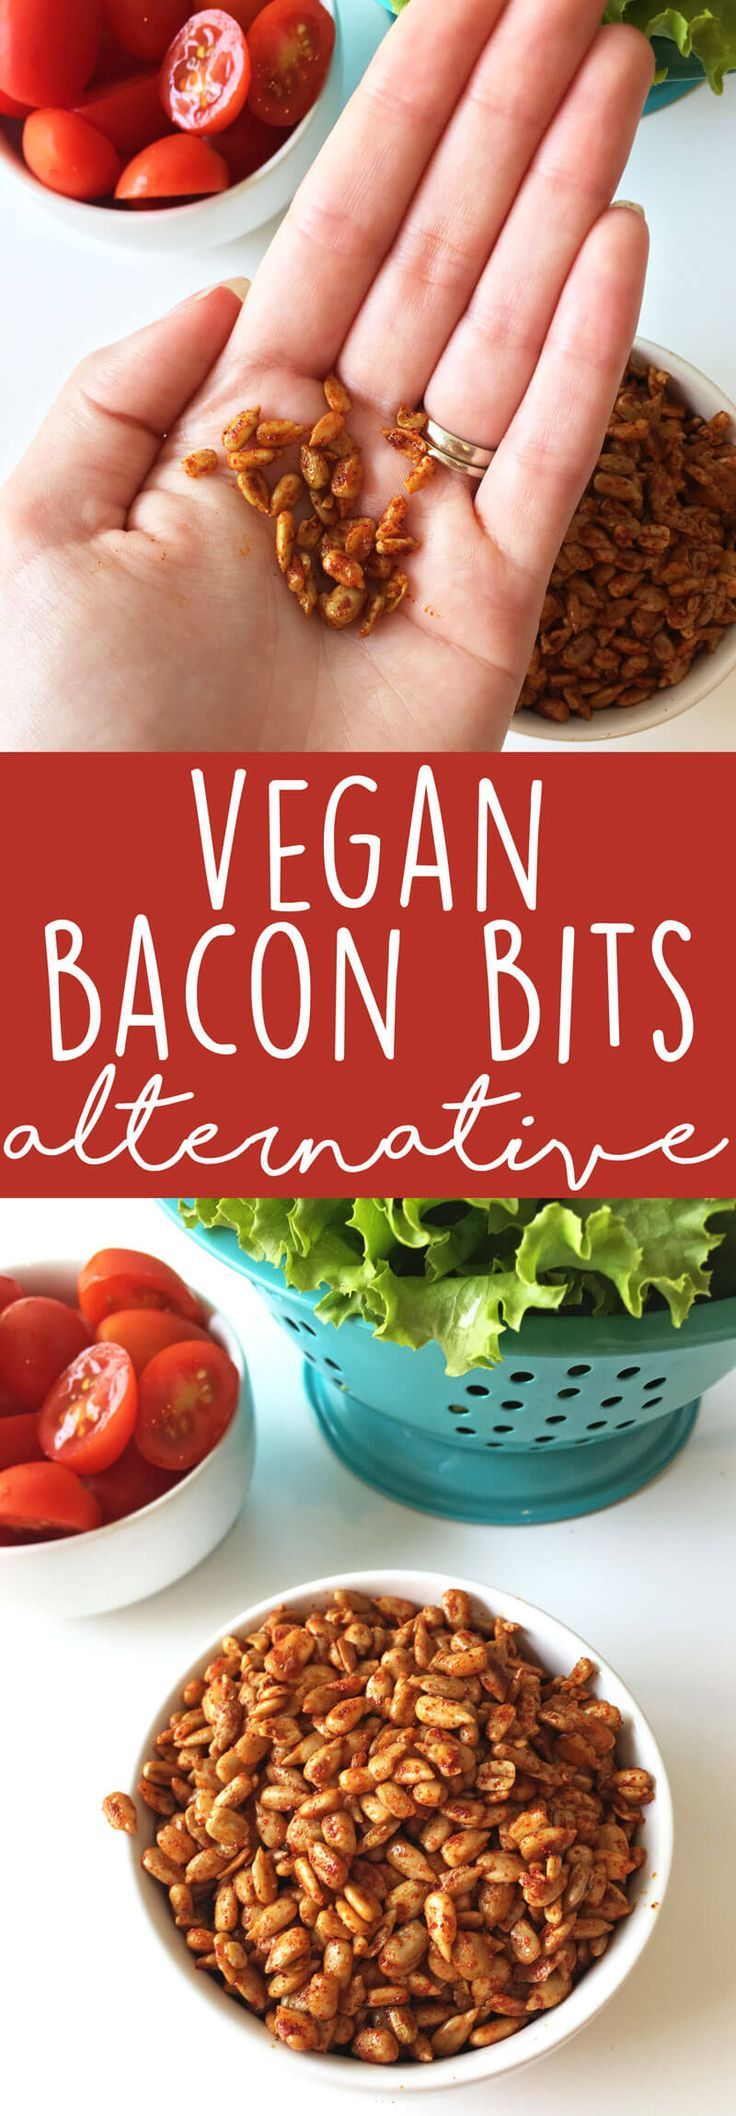 Healthy vegan salad recipes don't have to be bland and boring! Make these super simple and quick vegan bacon bits to jazz up your salad and add lots of delicious, smokey, salty flavor. This vegan bacon bits alternative recipe calls for simple, wholesome i